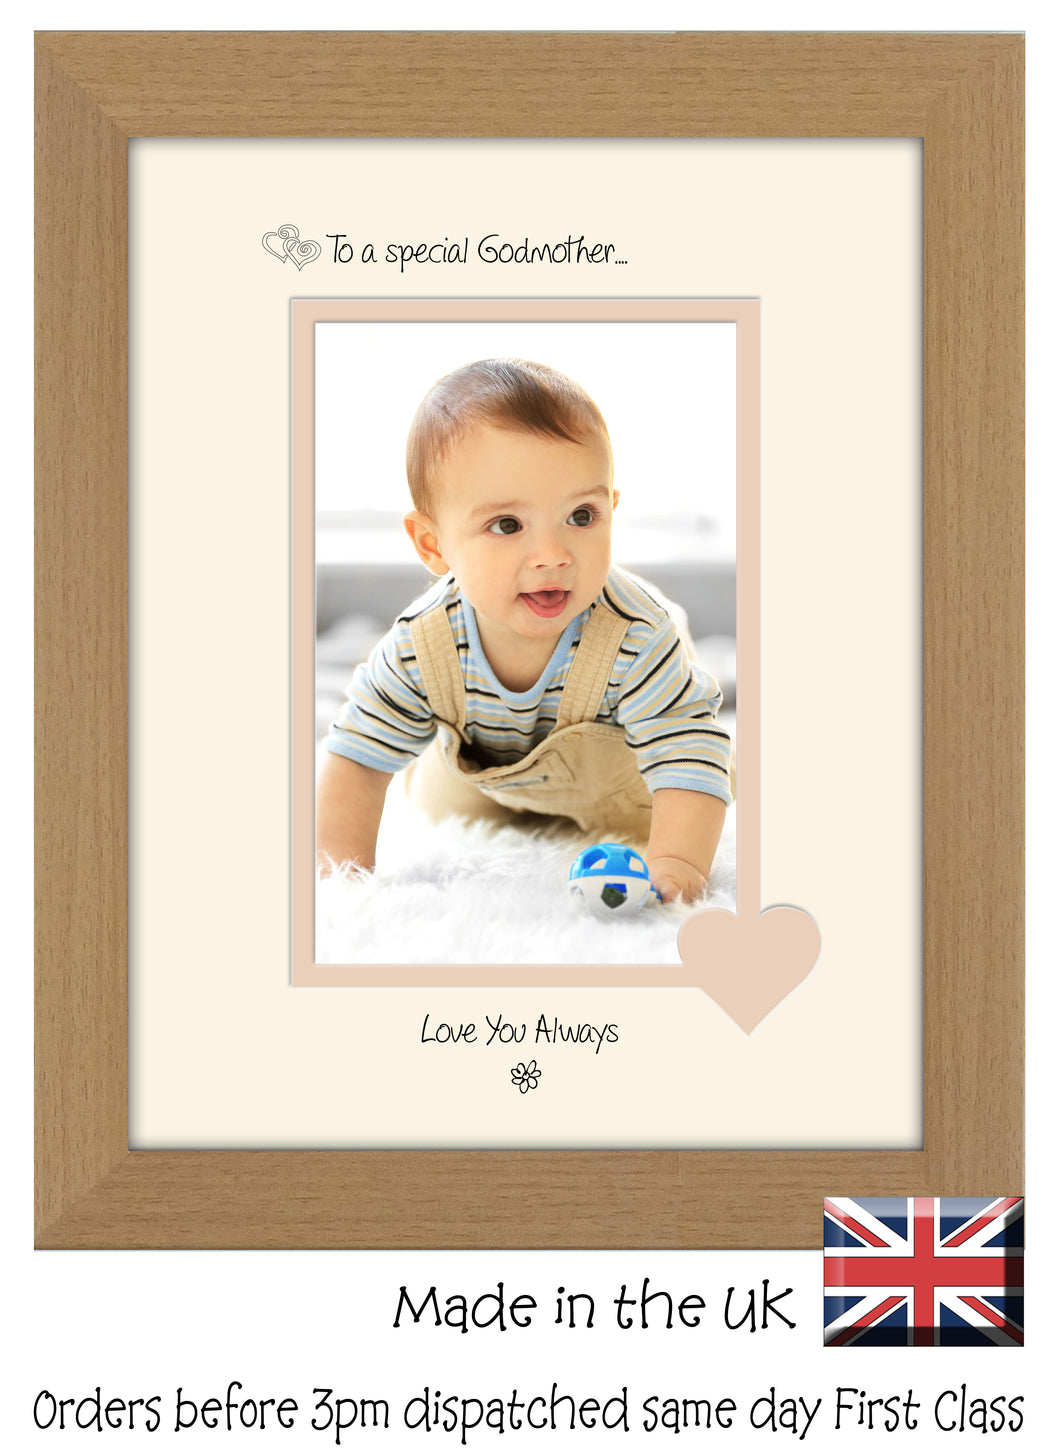 Godmother Photo Frame - To a Special Godmother ... Love you Always ...